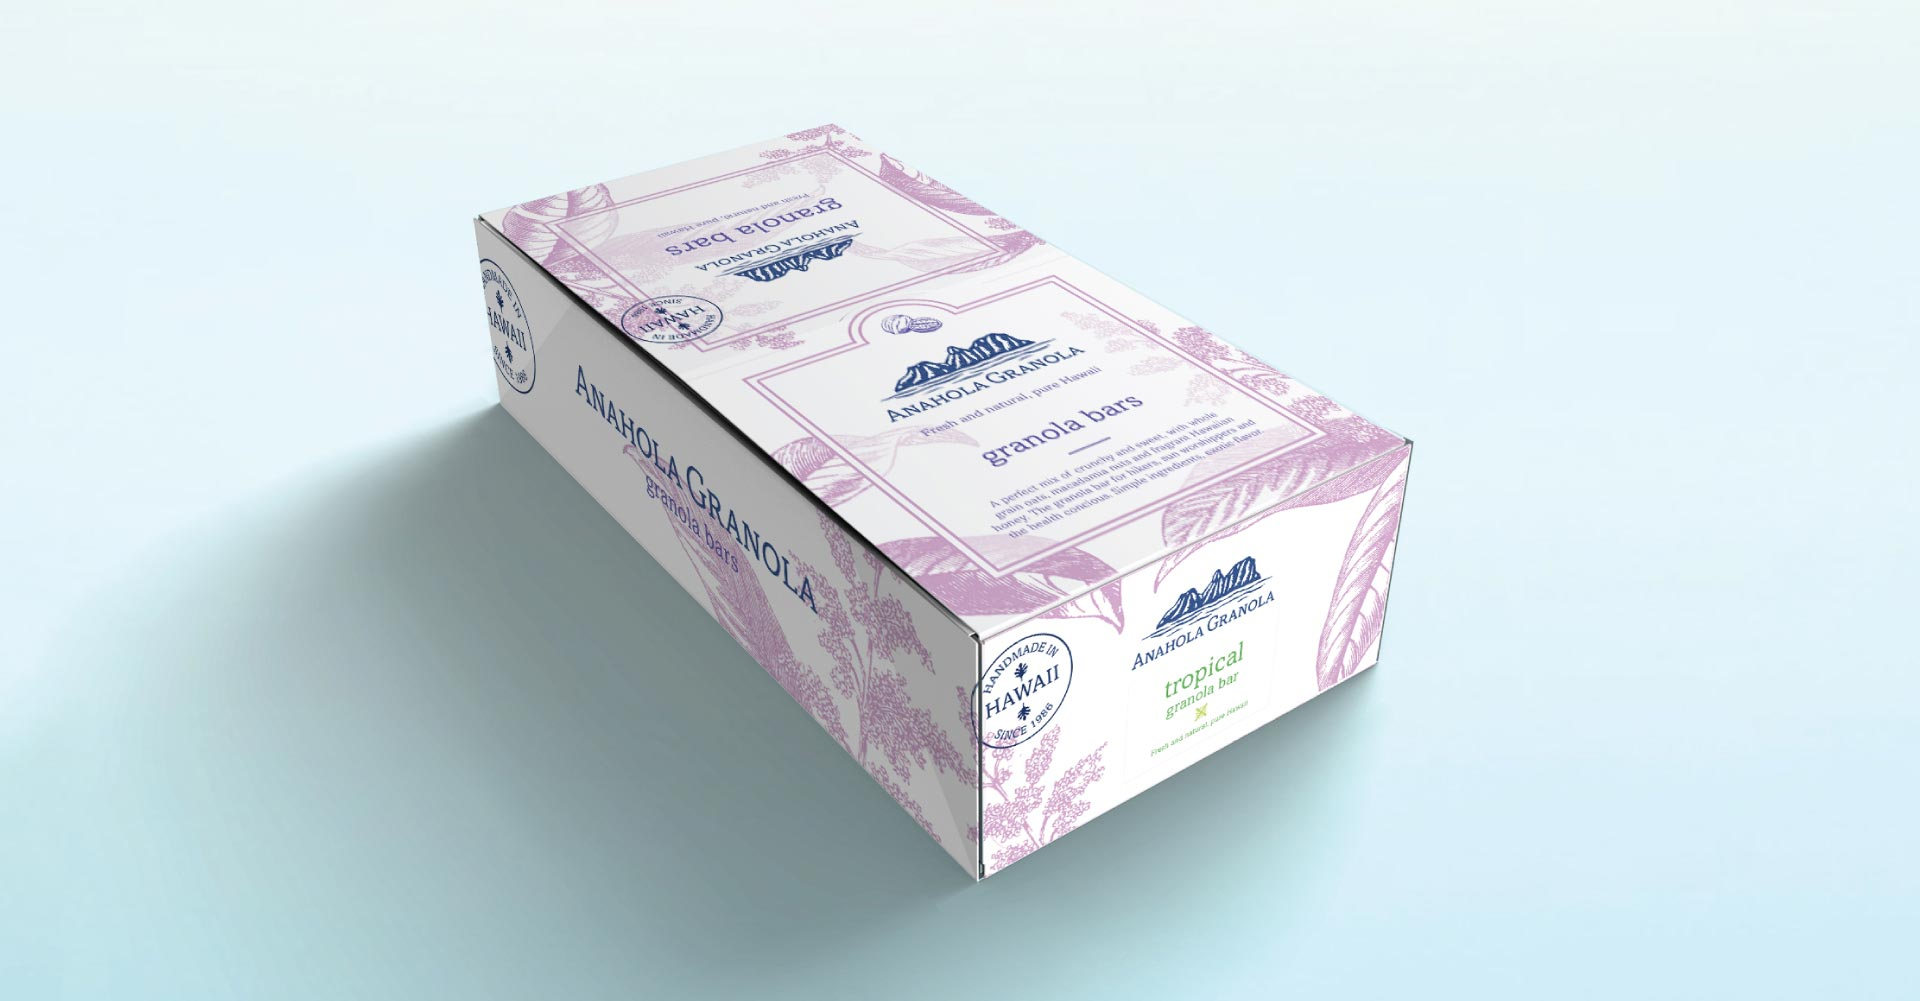 Creative_Retail_Packaging_Branding_Identity_Package_Design_AnaholaGranola_14.jpg